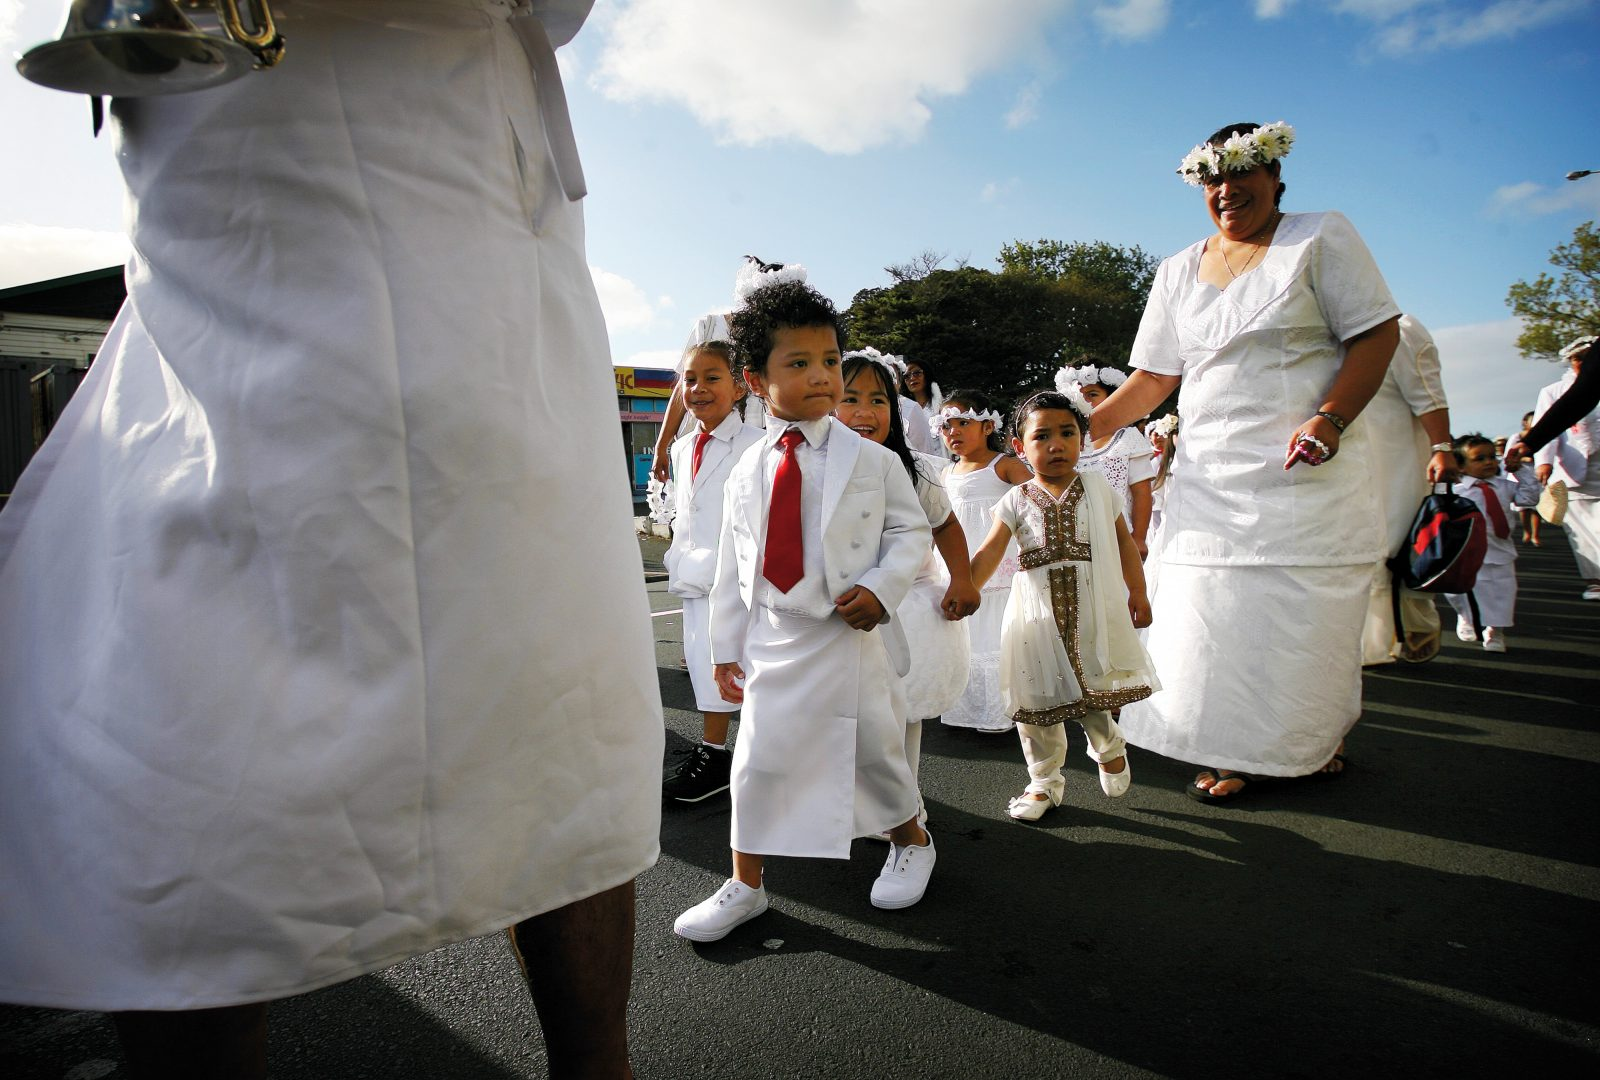 The 2011 White Sunday celebrations in Auckland began with a procession of around 100 children and parents along Great North Road to Avondale Union Parish church. White Sunday, or Lotu Tamaiti, is among the most important dates in the Samoan religious calendar. Children enjoy special privileges, such as speaking in church and being served first at the lunch feast. White is worn to symbolise the purity of a child's heart.